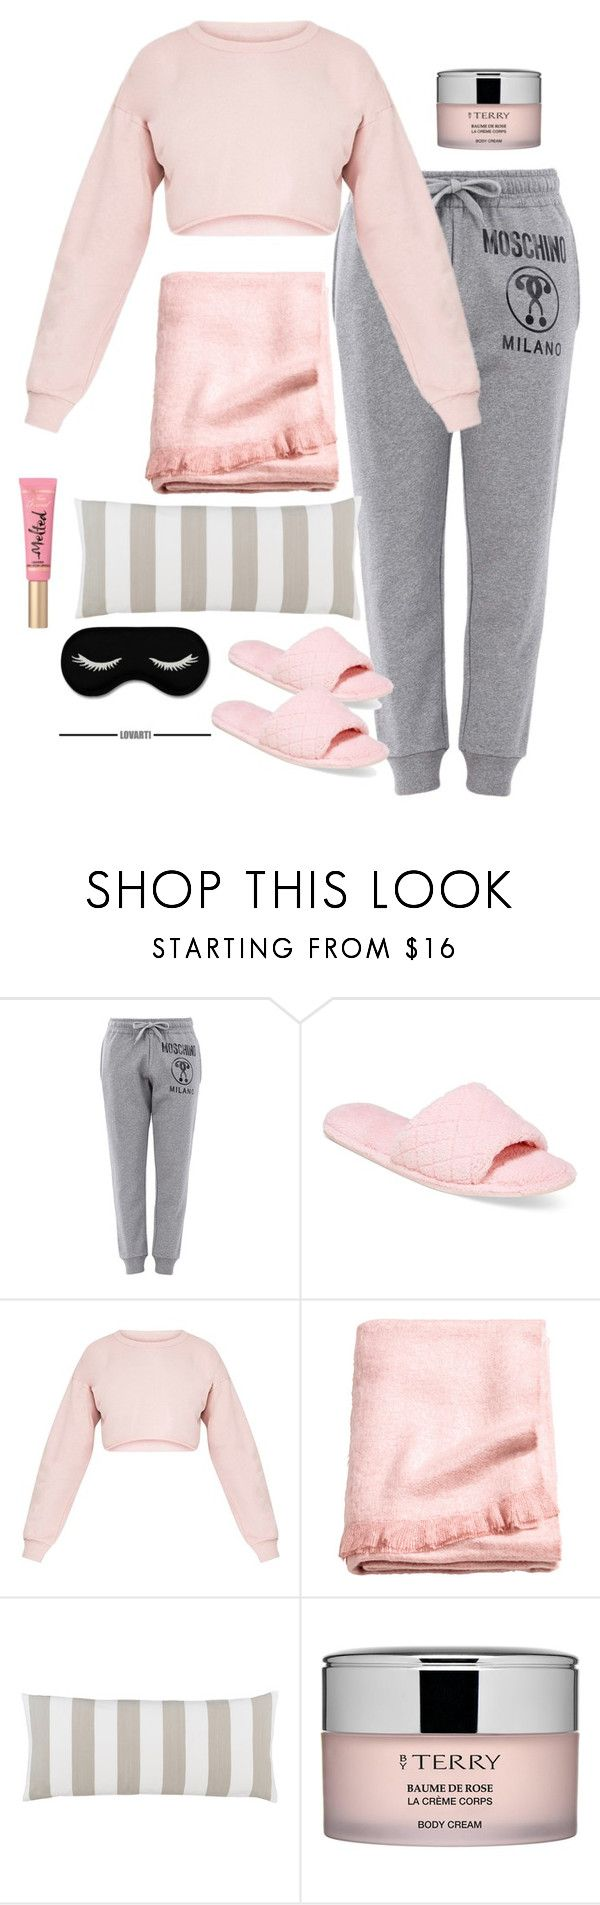 Untitled #54 by nicole-perestrelo21 on Polyvore featuring Moschino, Charter Club, Too Faced Cosmetics, By Terry, H&M and Pine Cone Hill